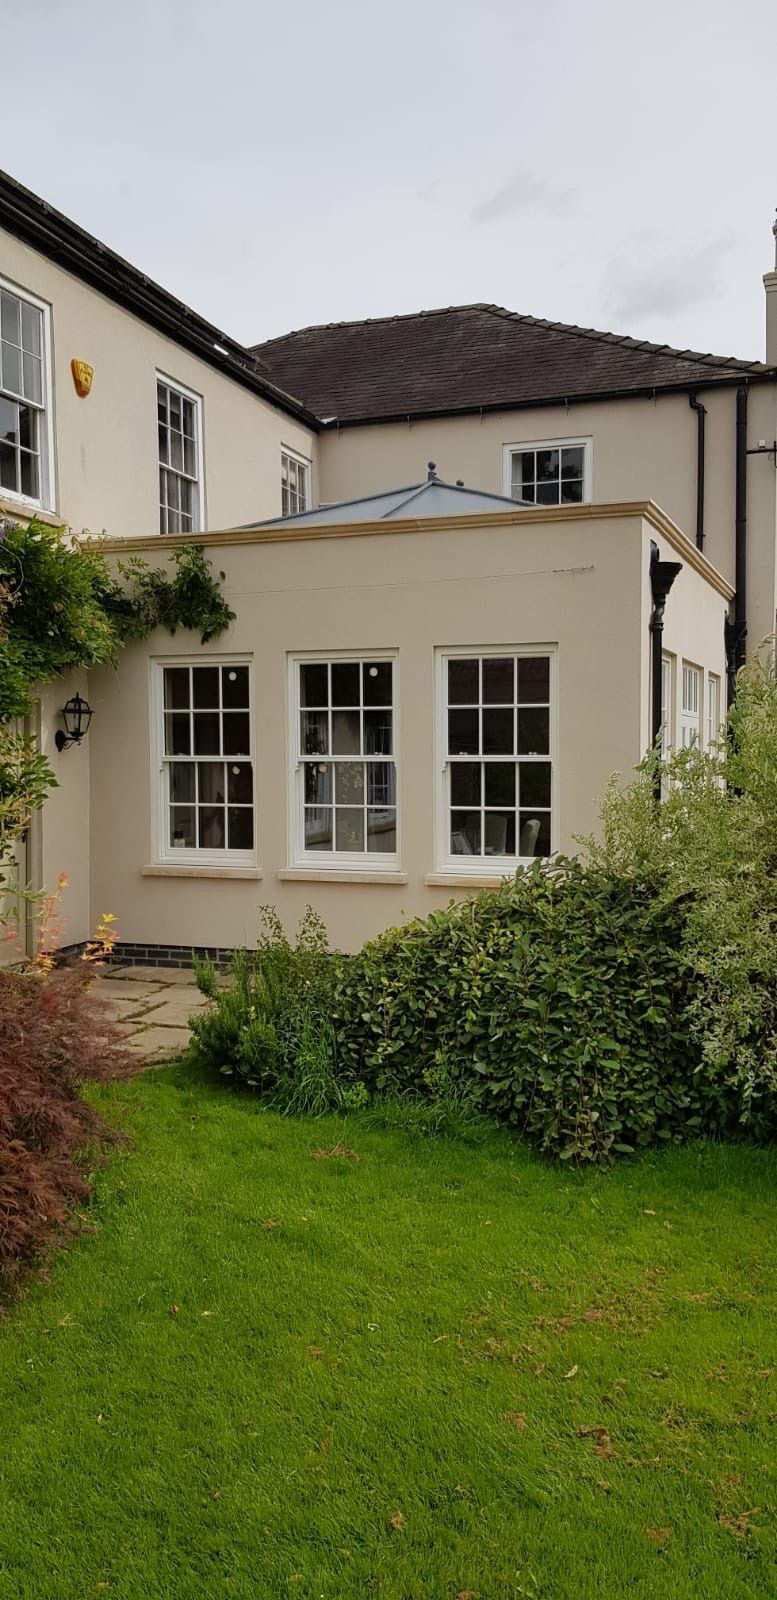 Finished manor house extension